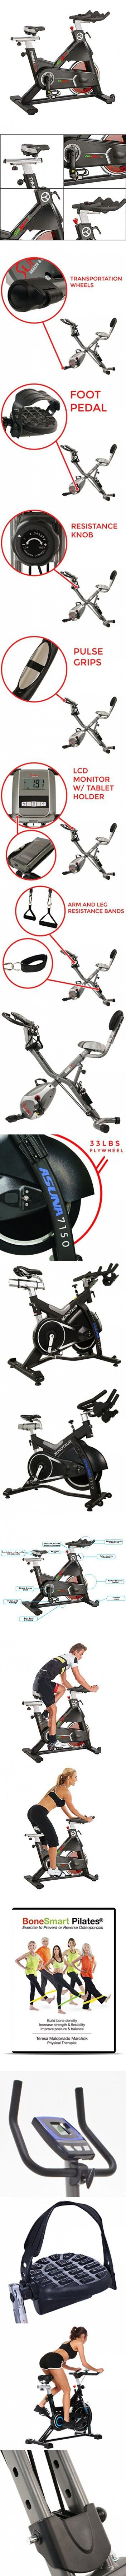 Professional Indoor Cycling Bike for Achieving Your Fitness Goals - Cycle Bikes with Adjustable Seat and Heavy Duty Crank & Smooth Chain Drive Mechanism - (Black)